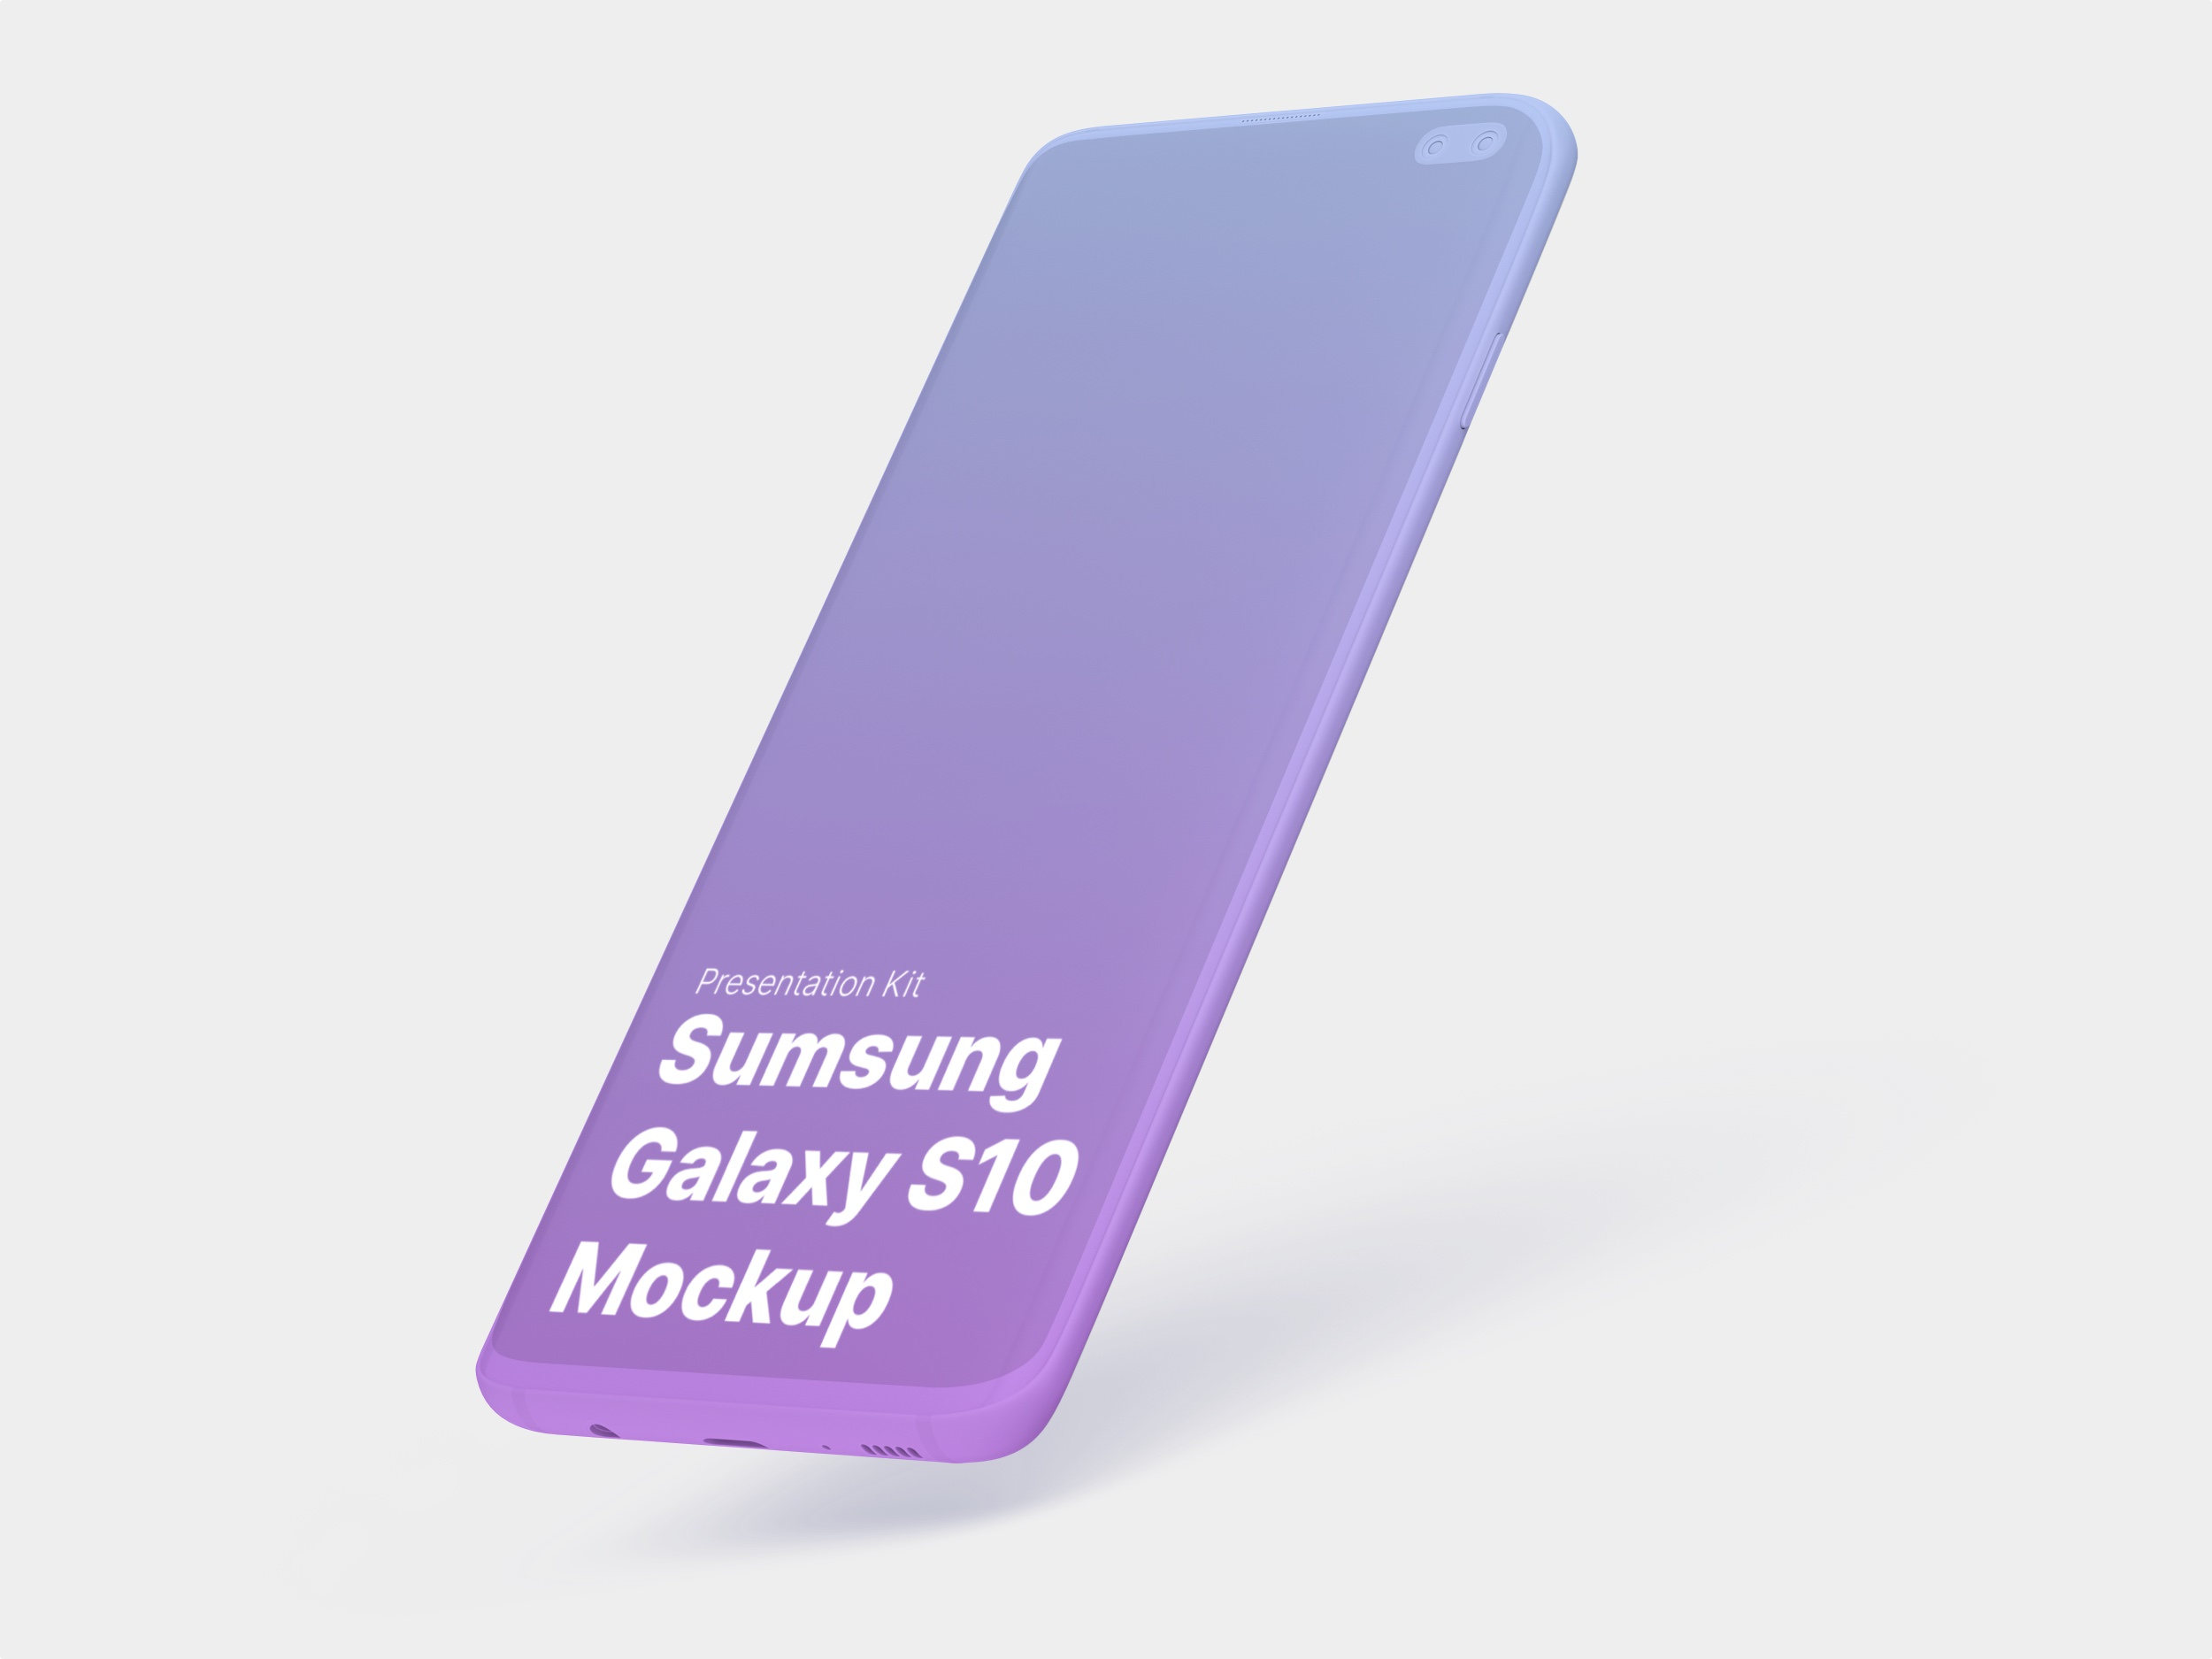 Samsung Galaxy S10 Mockup for Sketch,  Photoshop, Figma.